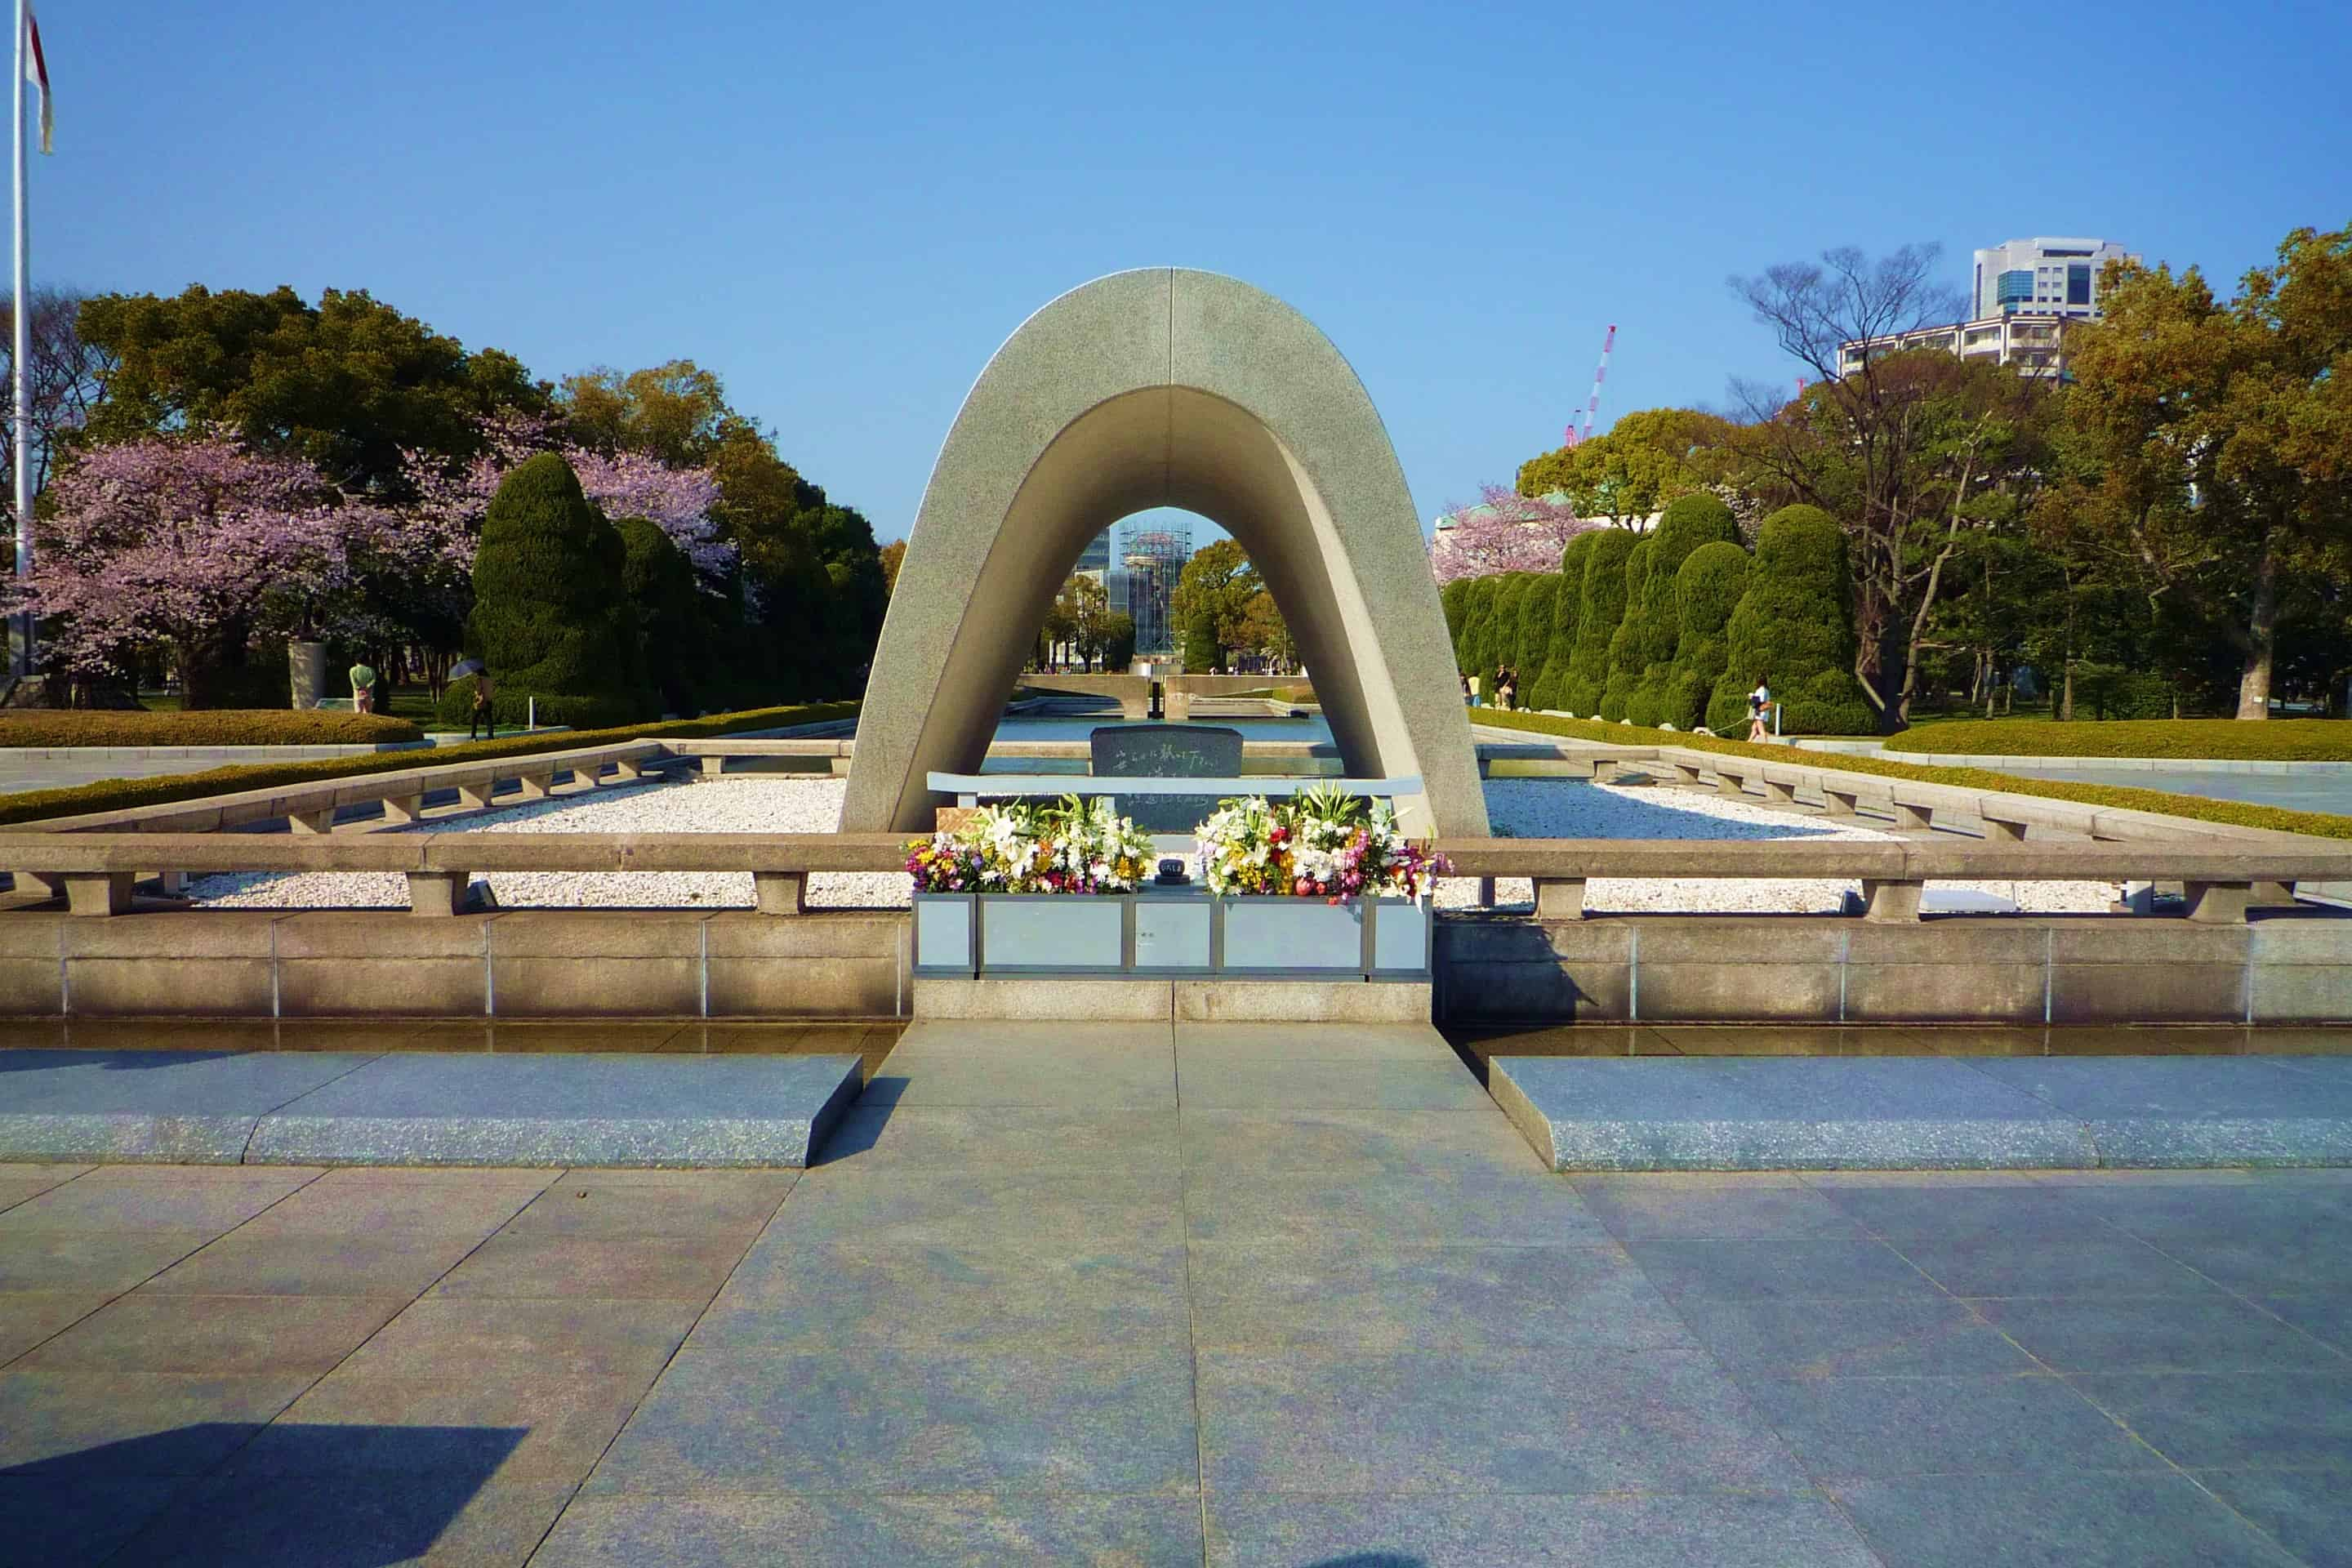 Memorial Cenotaph in Hiroshima, a monument containing the names of the dead